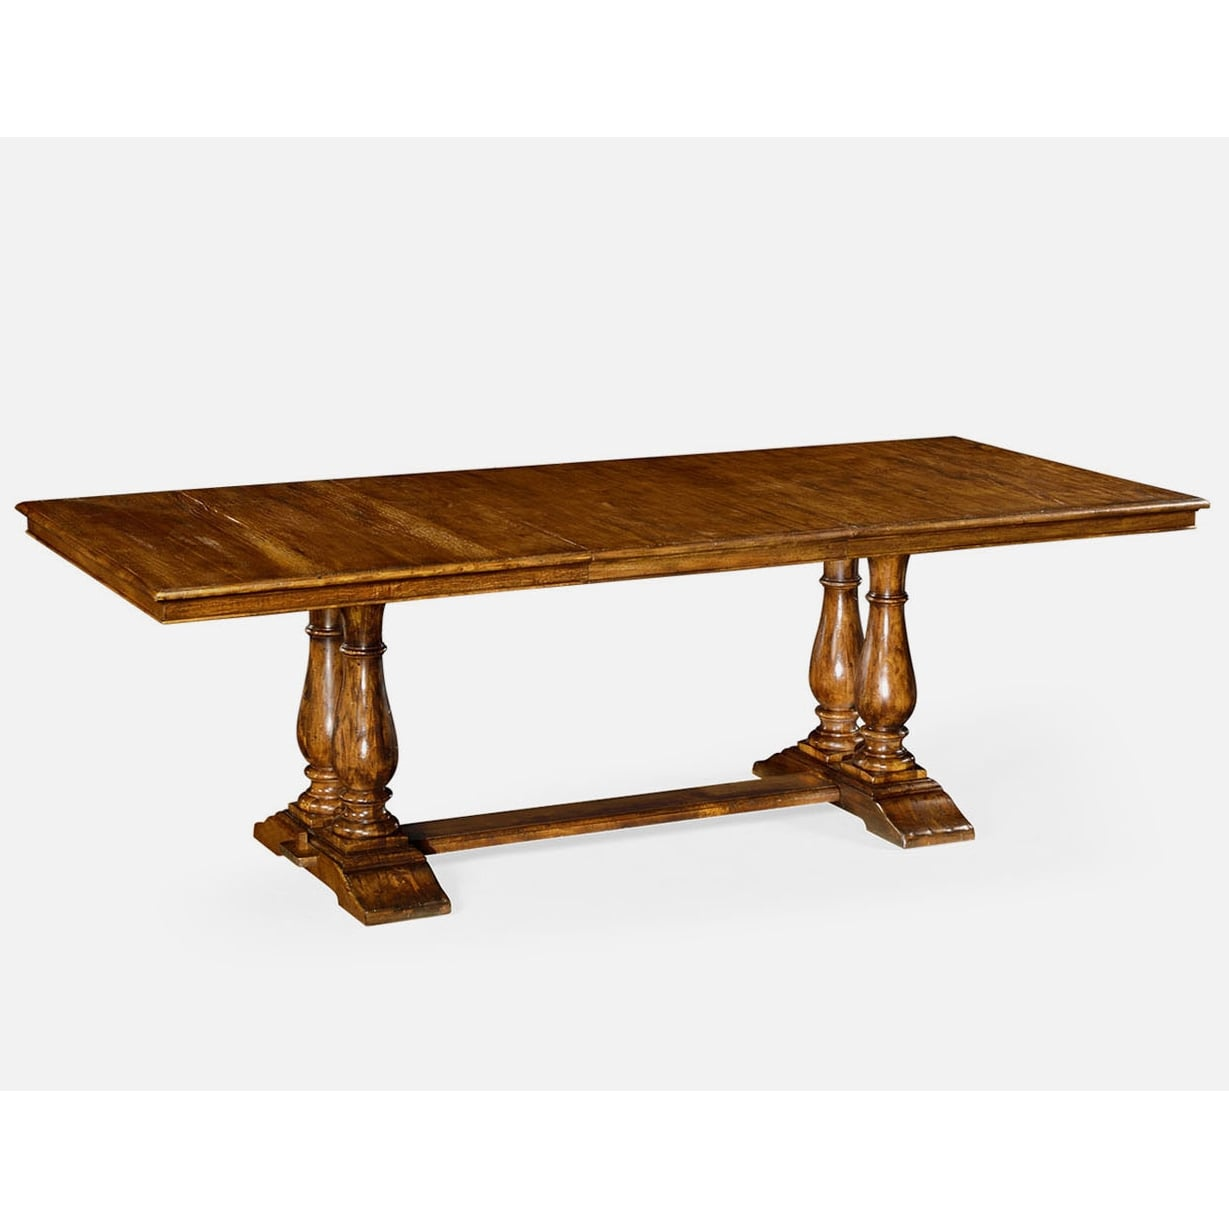 Walnut Extending Dining Table 71 Swanky Interiors